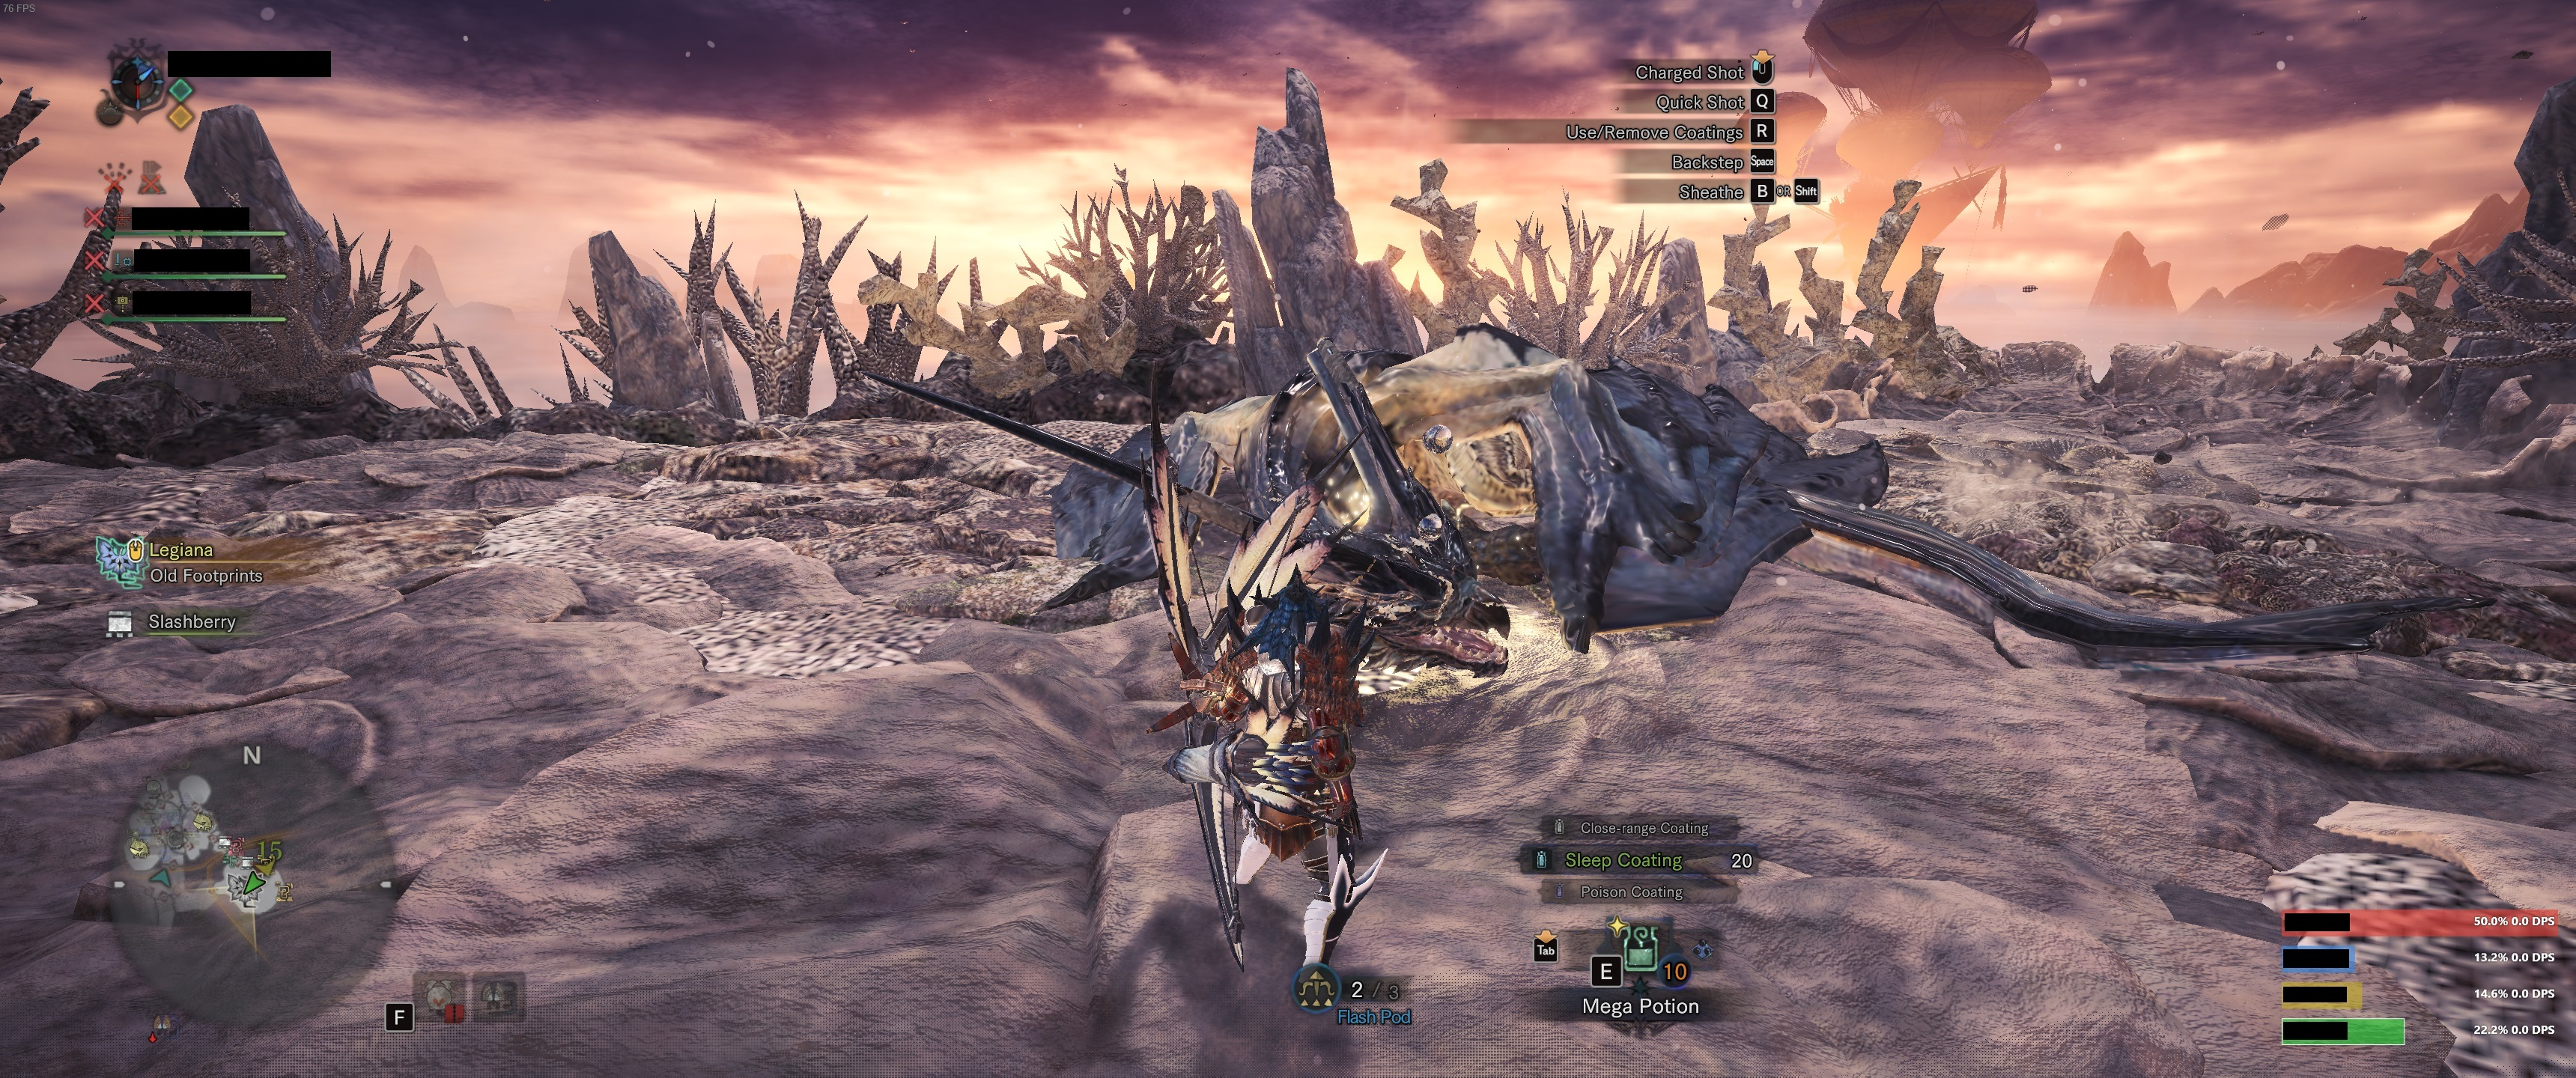 PC Monster Hunter World Damage Mods Show Damage and DPS Breakdown of